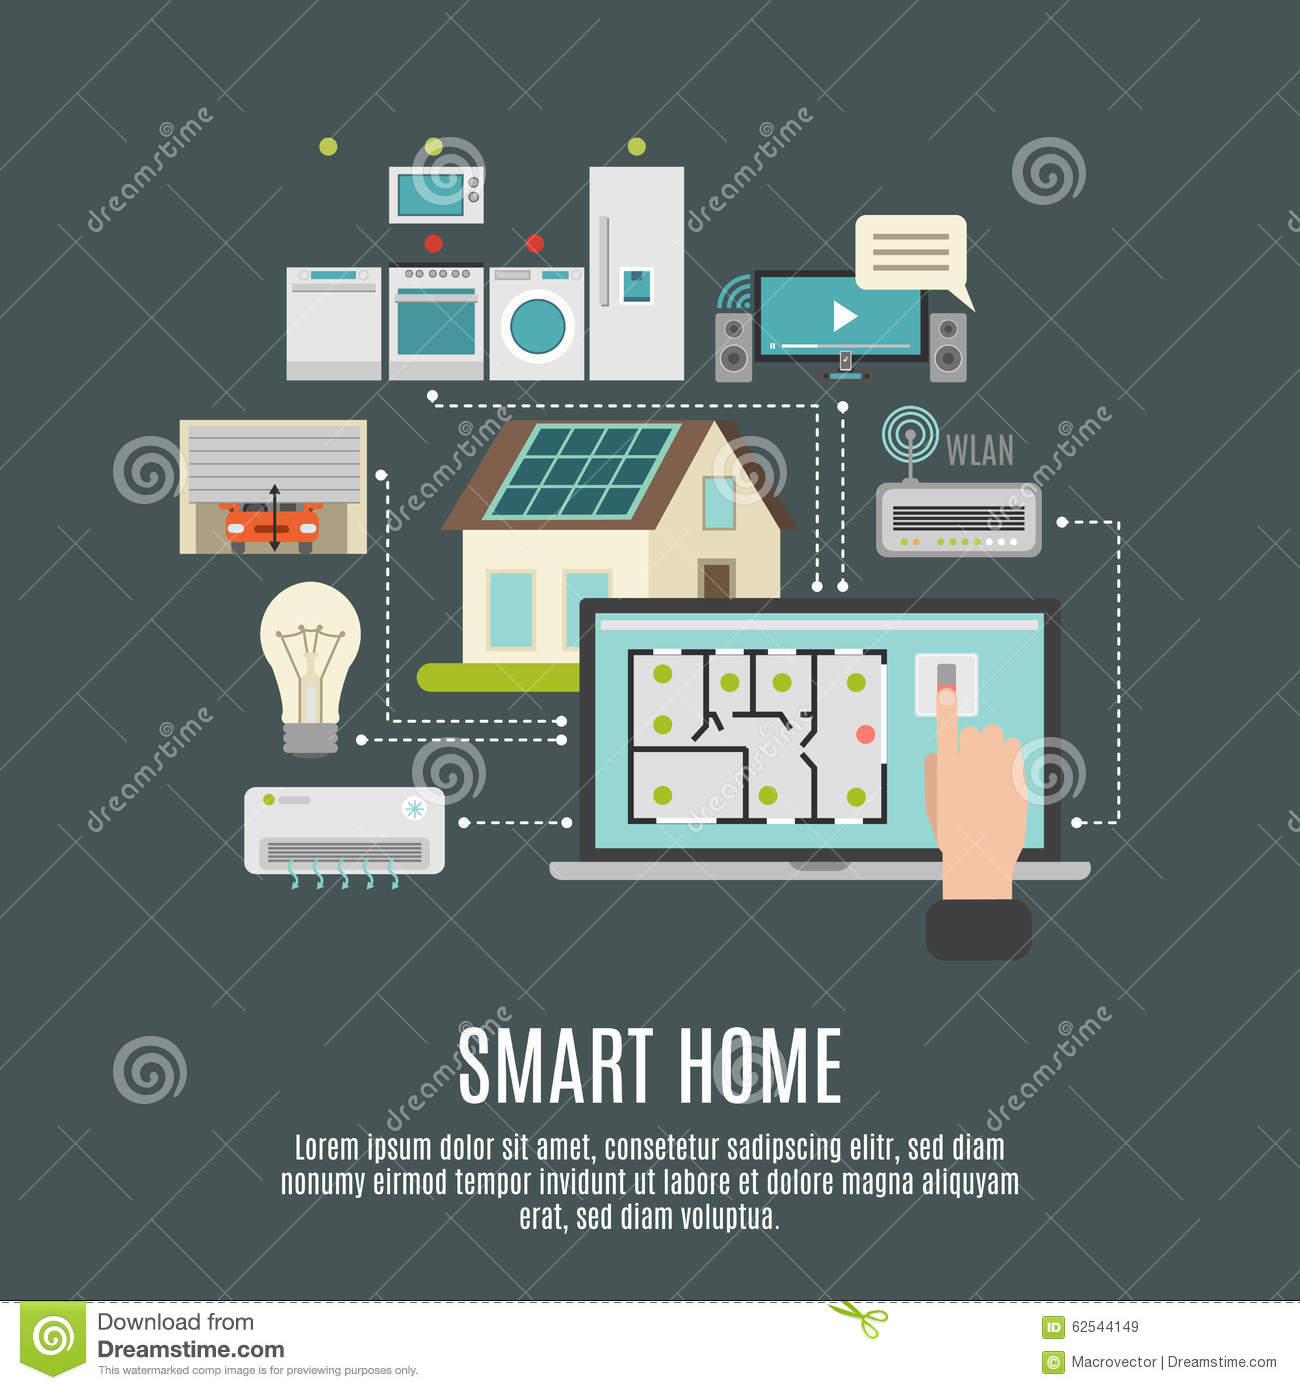 smart house iot flat icon poster stock vector illustration of decorative appliances 62544149. Black Bedroom Furniture Sets. Home Design Ideas